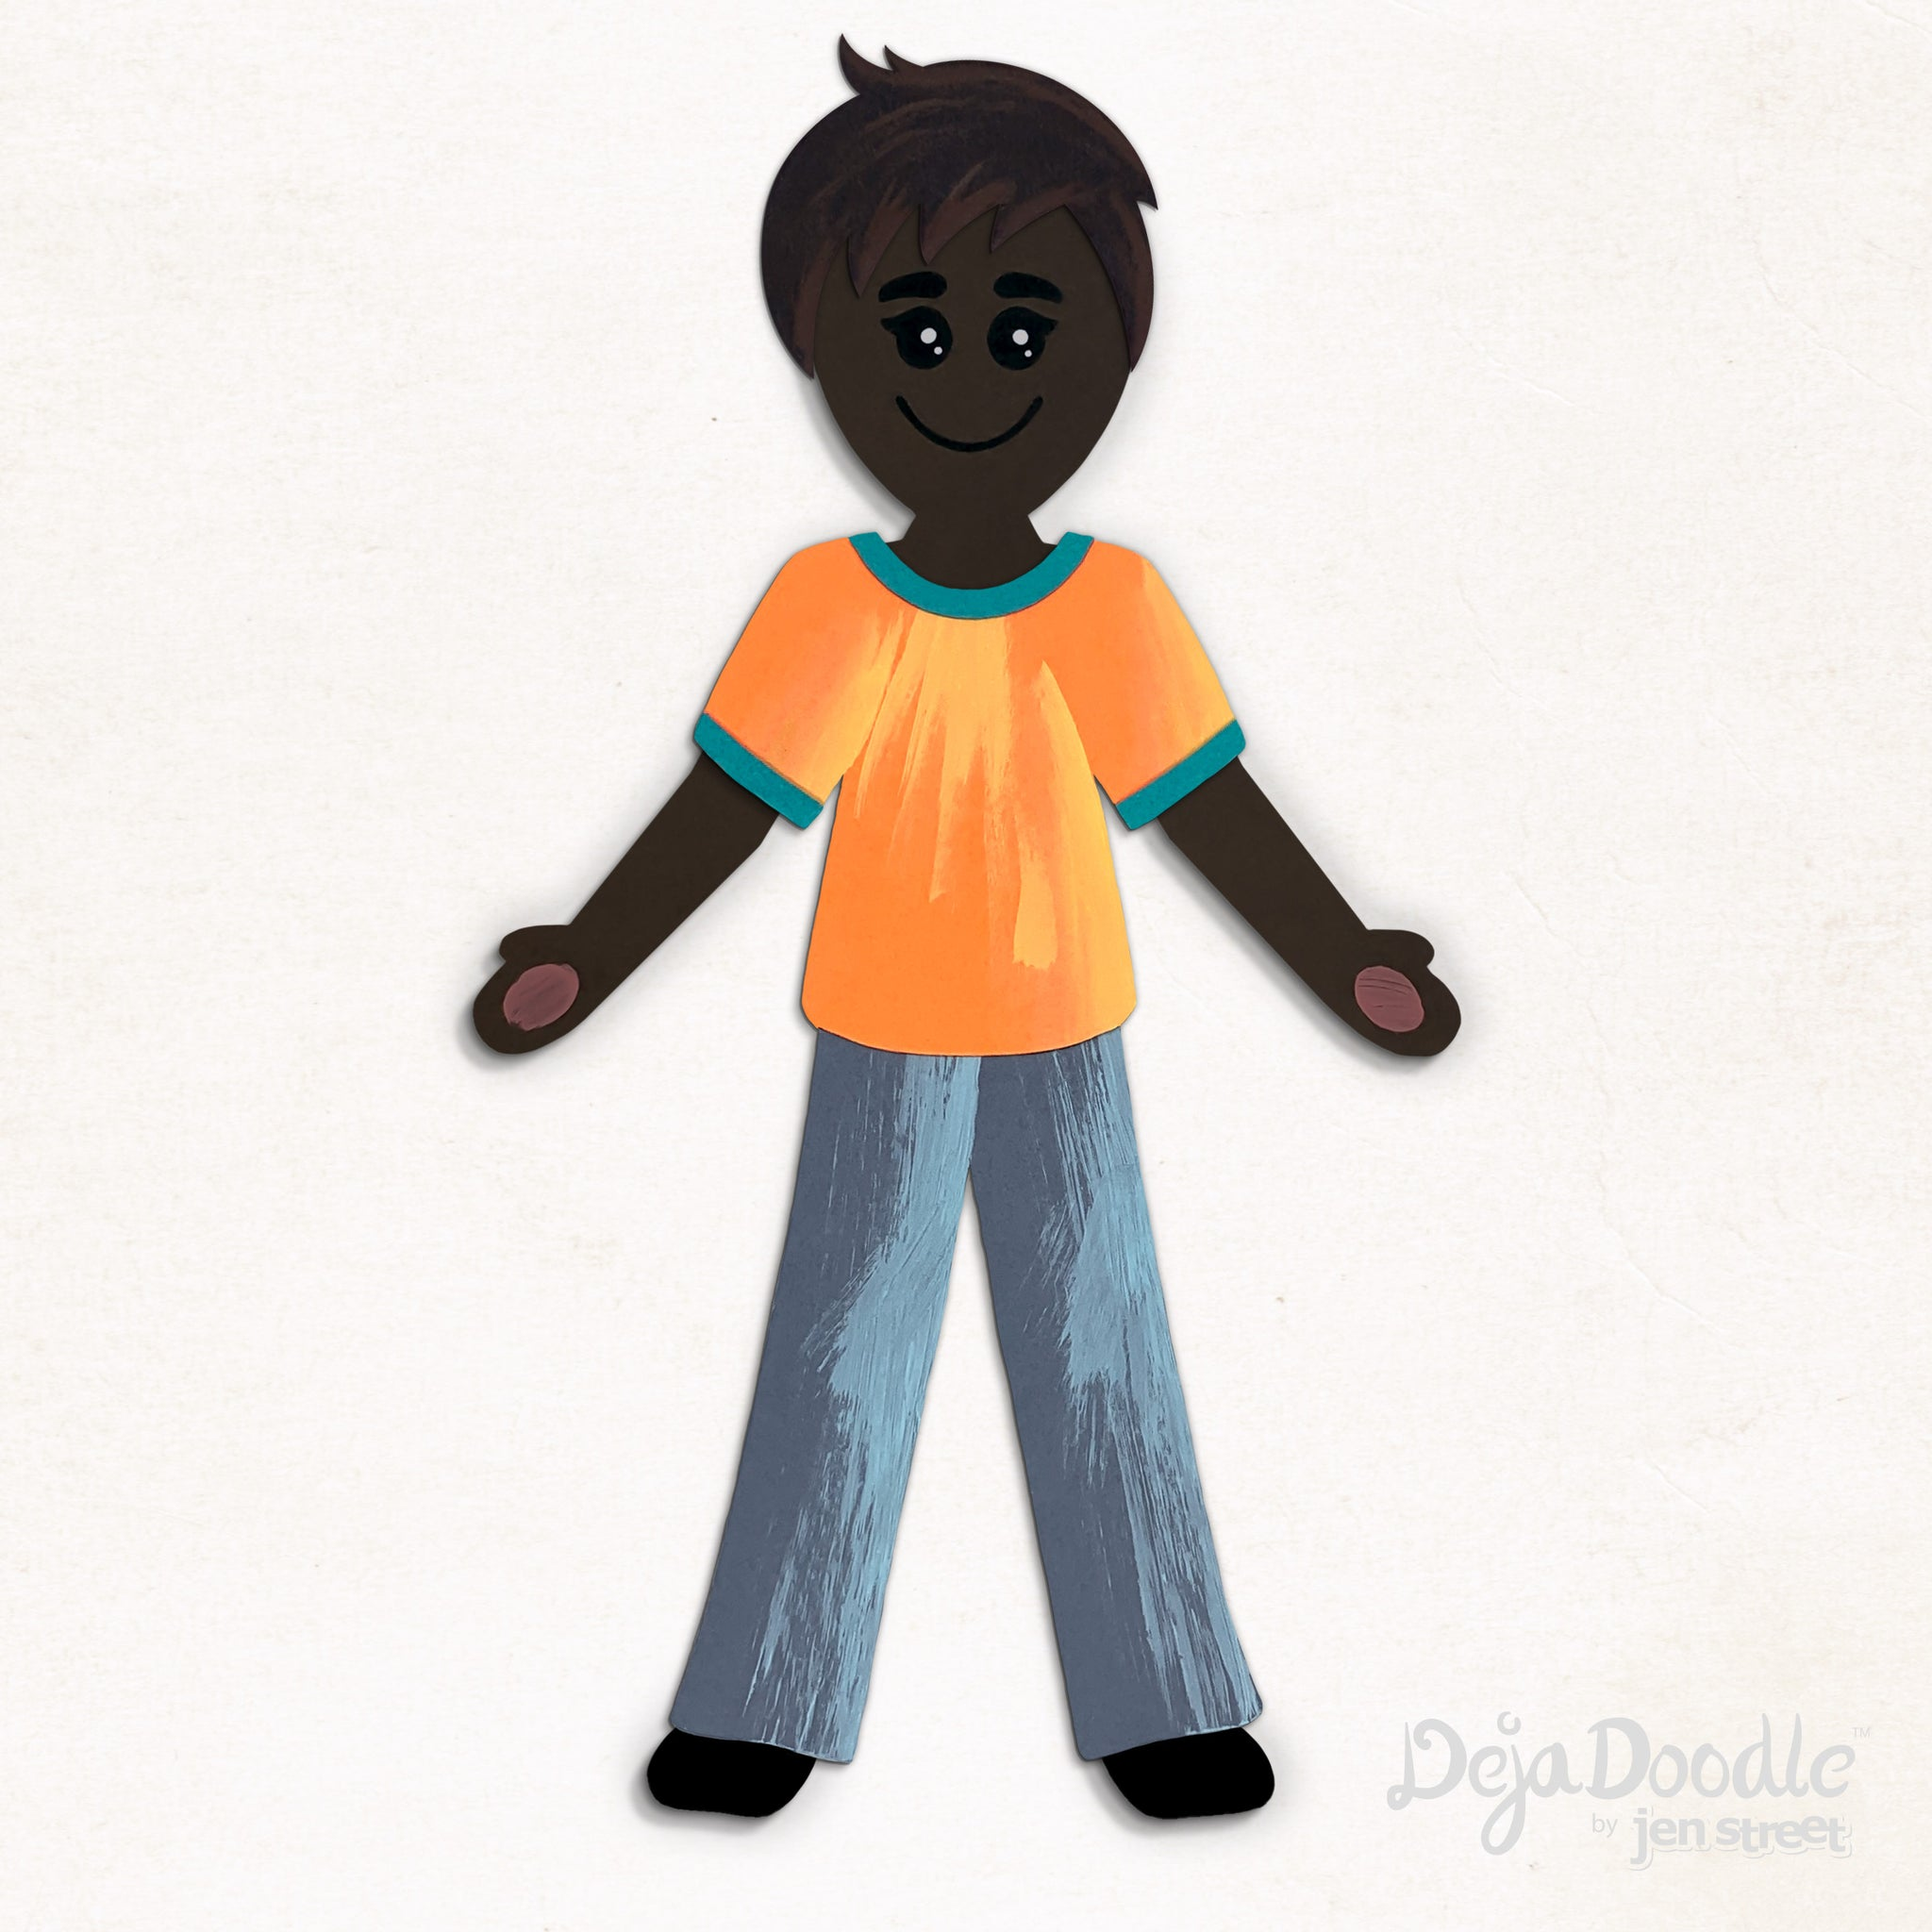 Silhouette Style B - Dark Skin Tone - Sandy Brown Hair (Choose Hairstyle & Outfit)